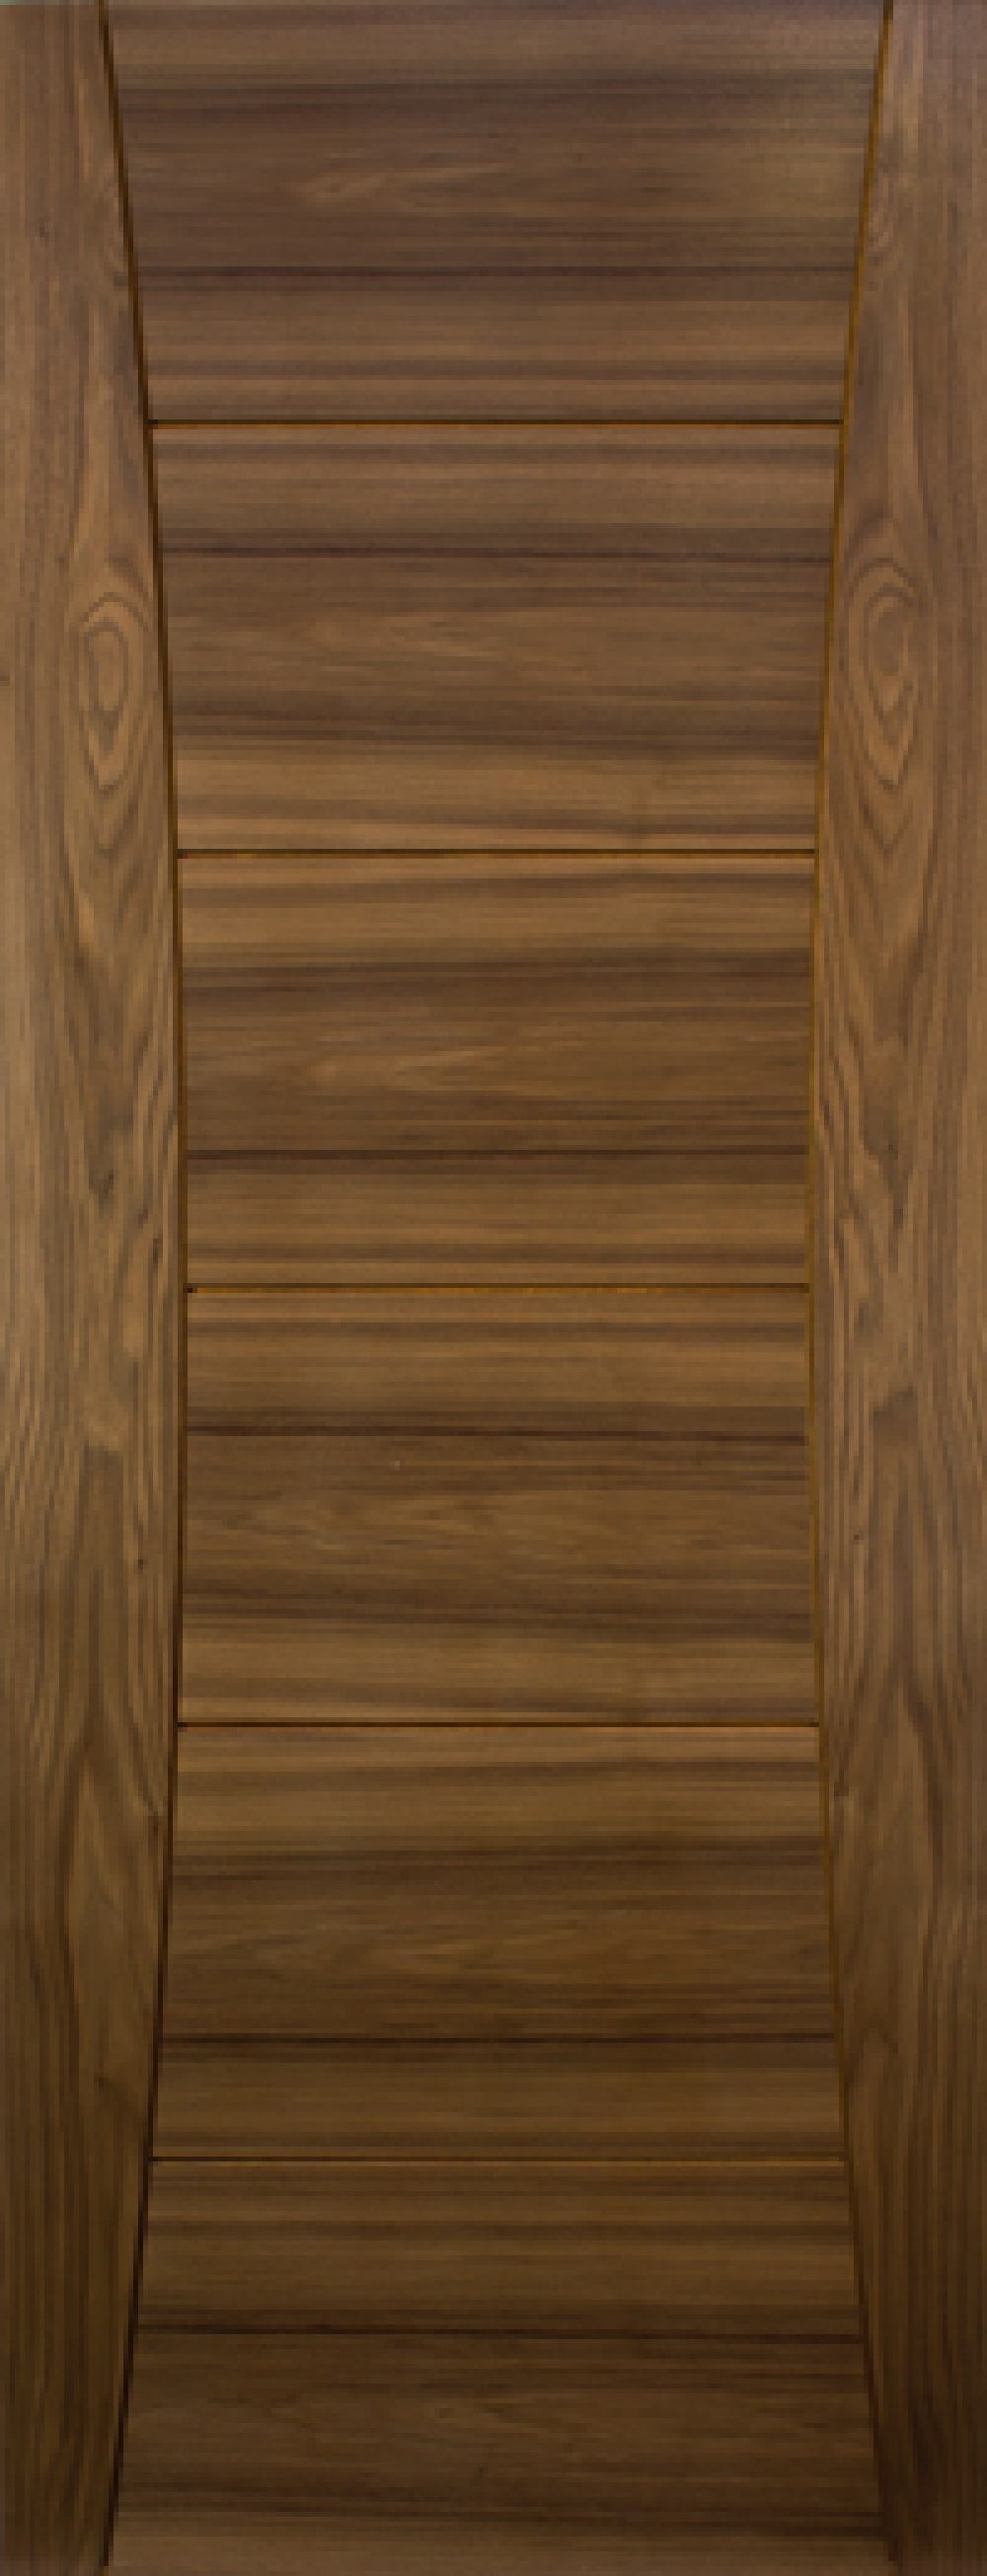 Pamplona Walnut Door - Prefinished